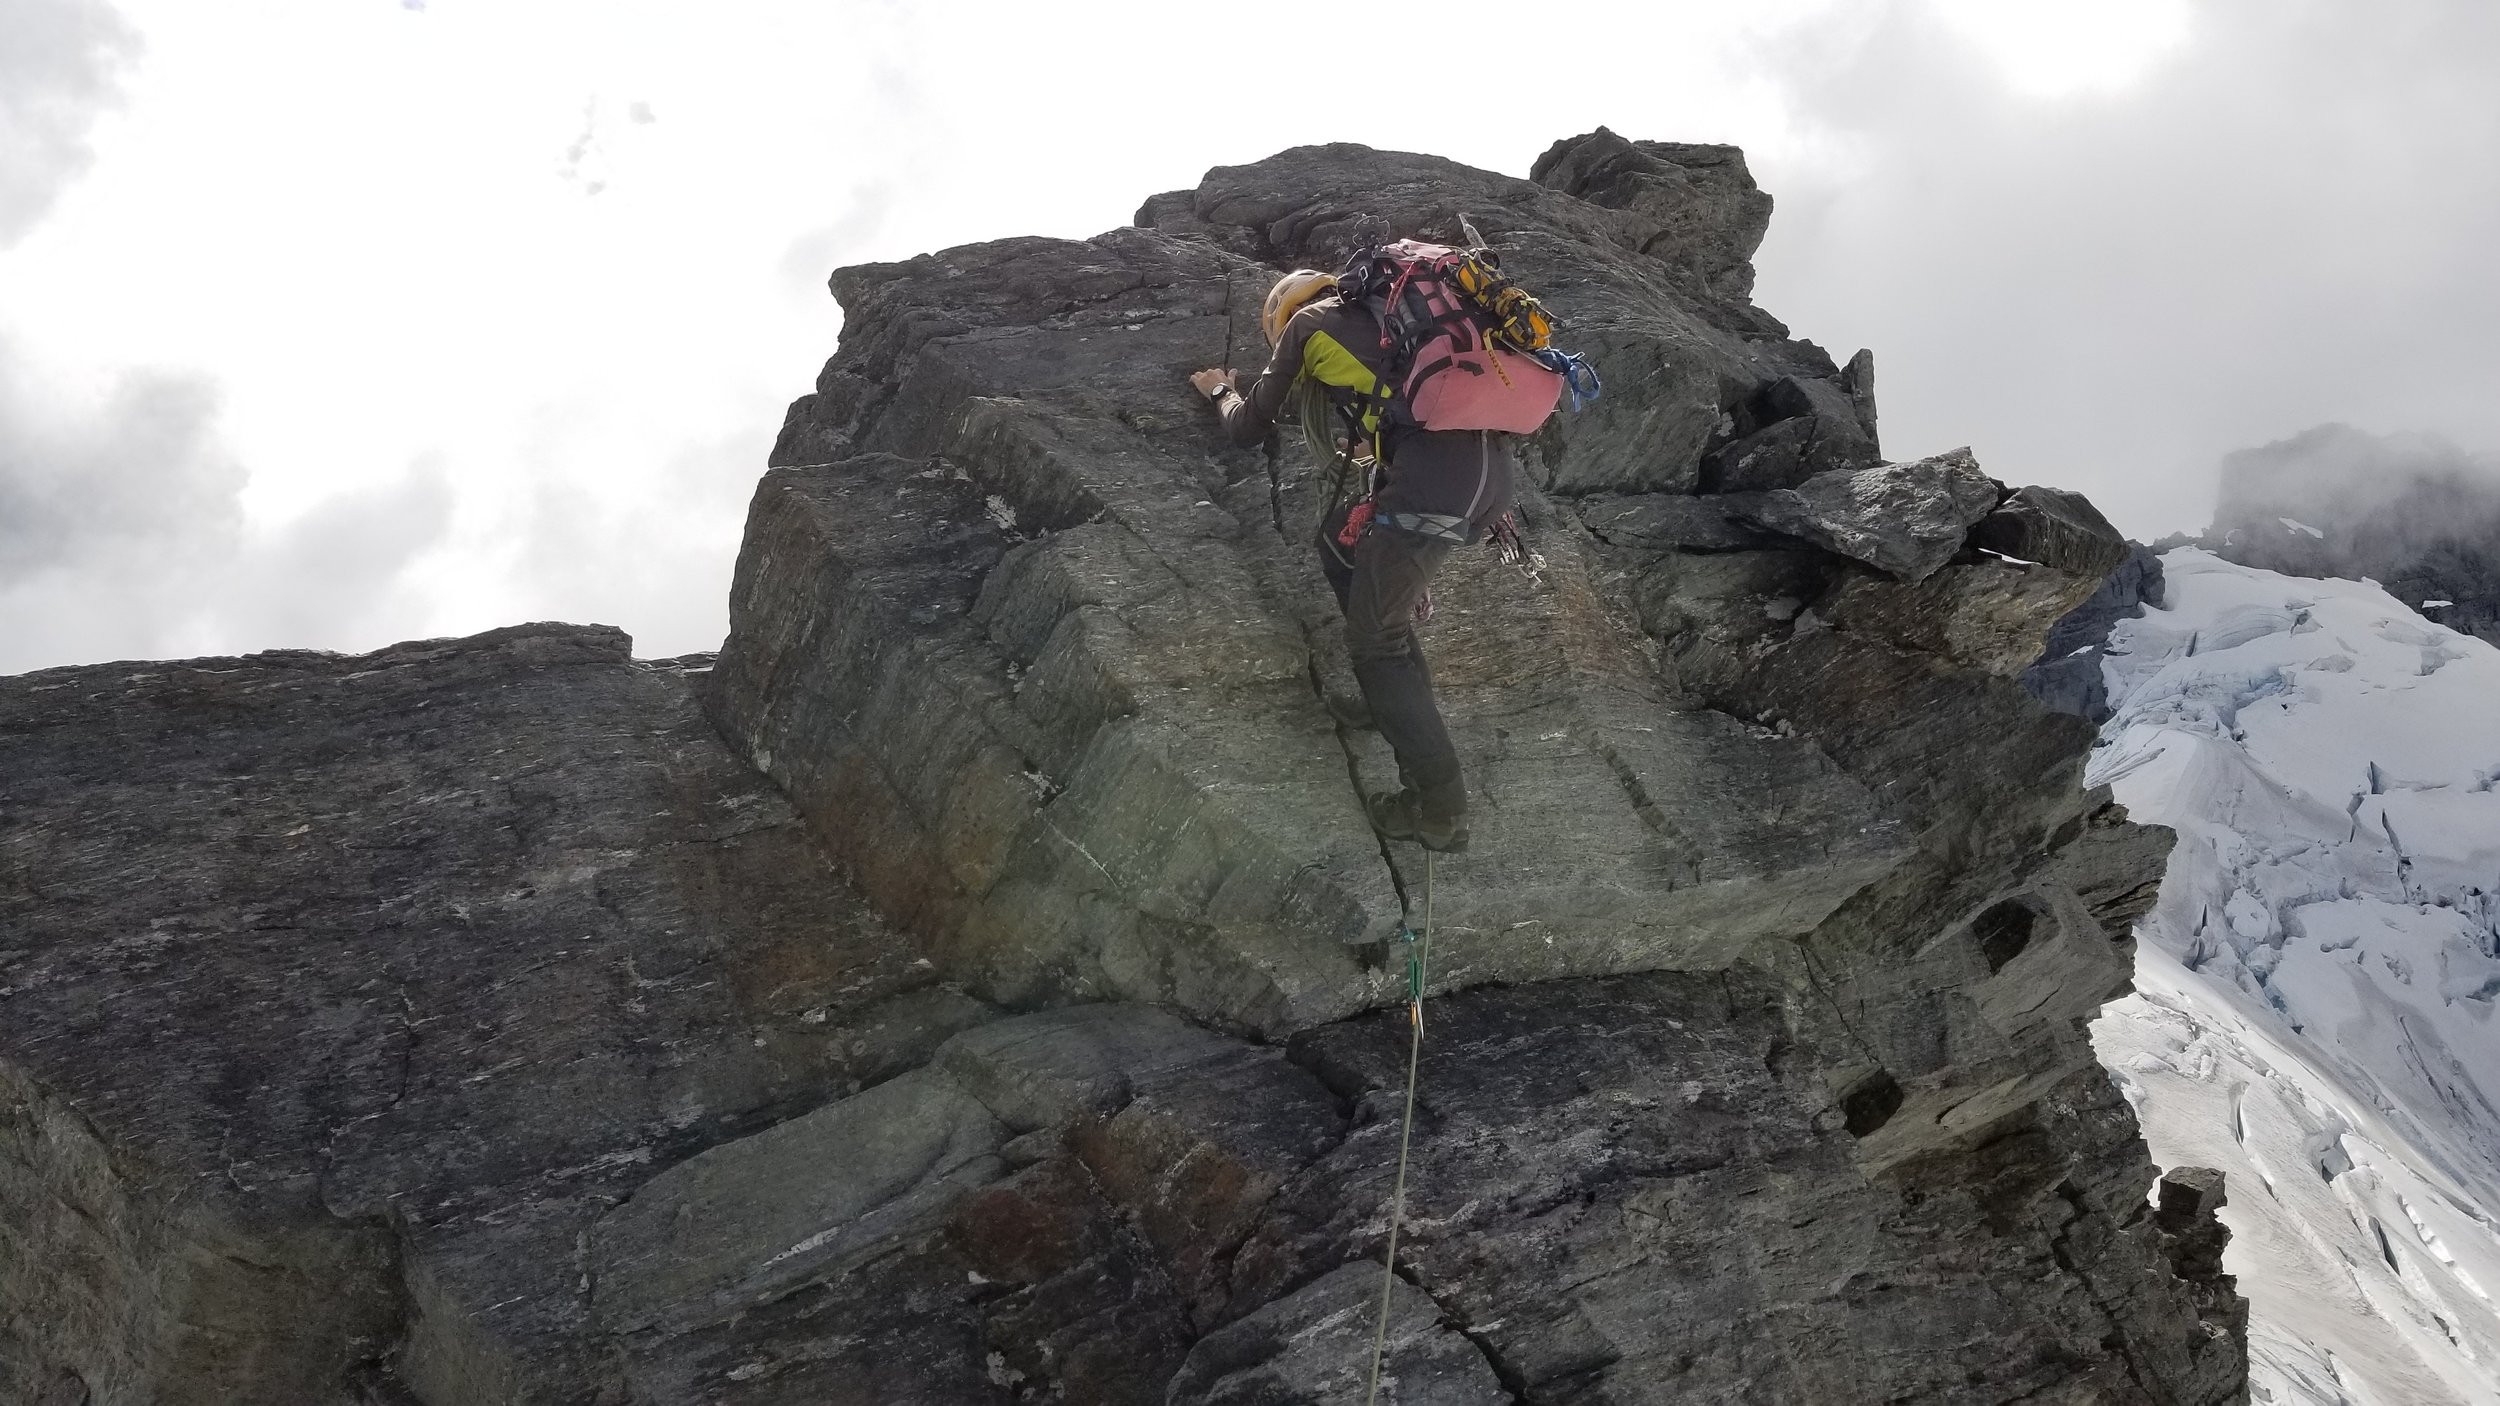 On descent, climbing out of one of the notches